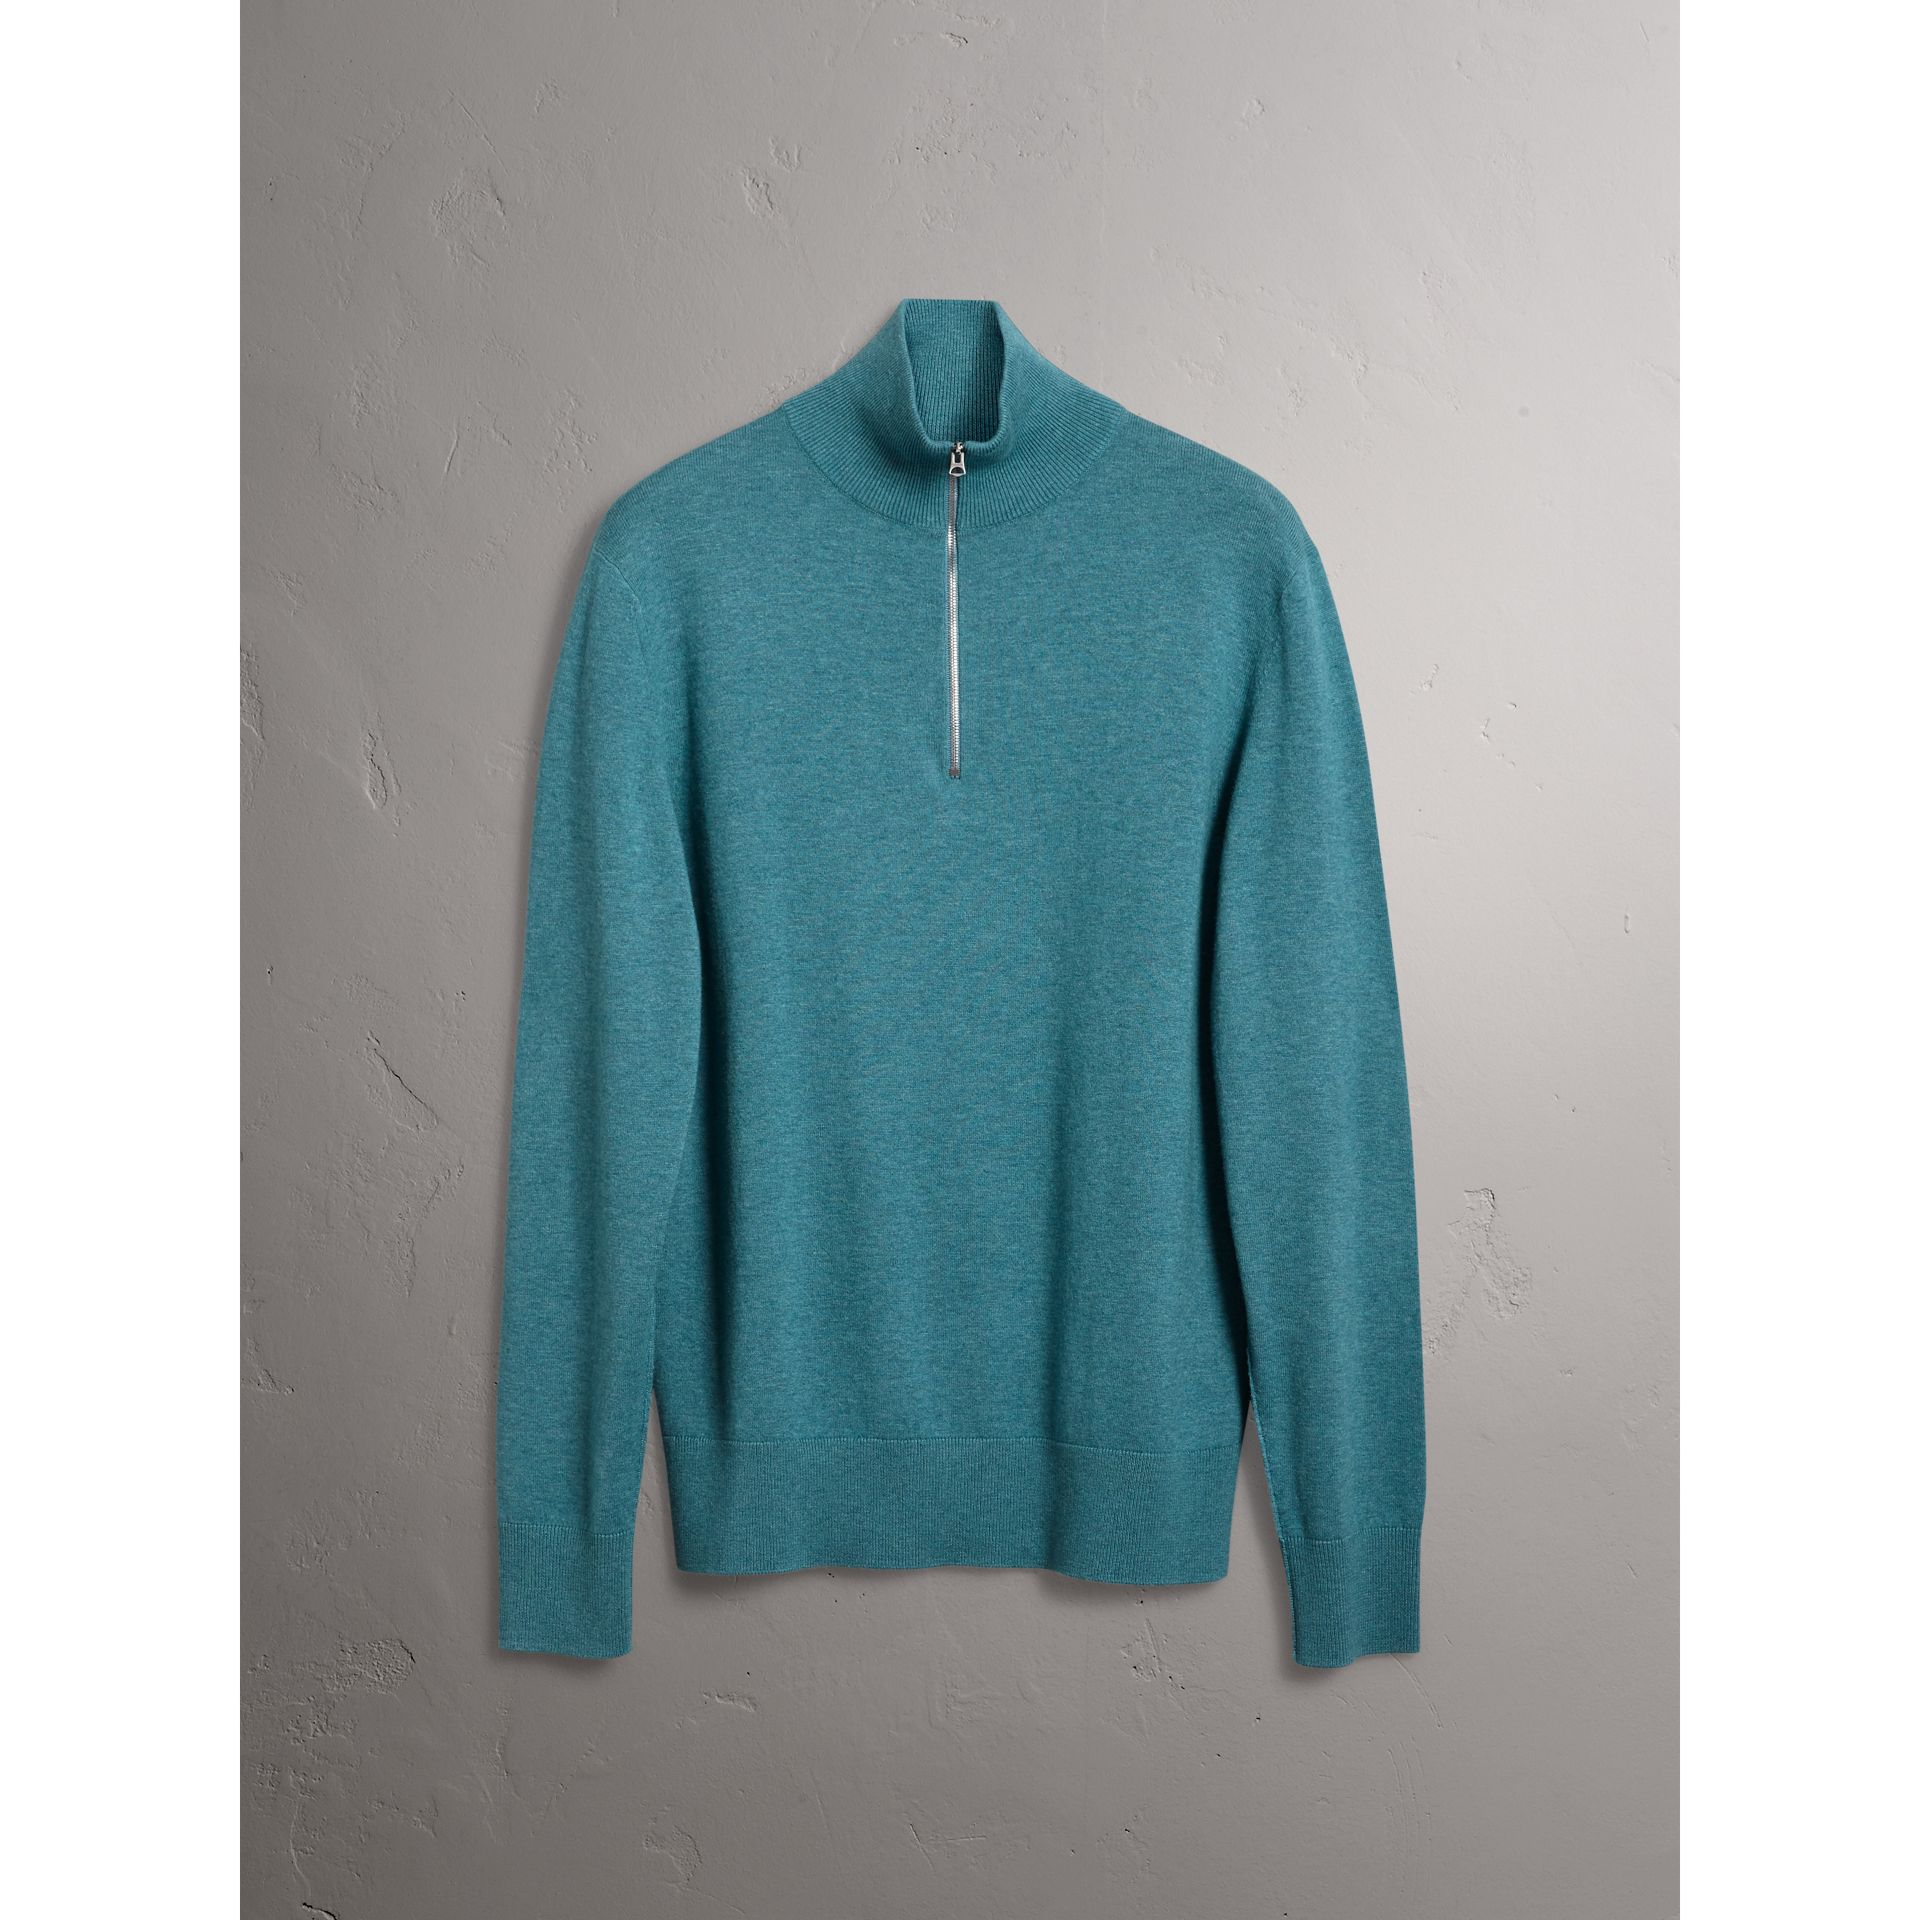 Burberry Grey Blue Zip-neck Cashmere Cotton Sweater